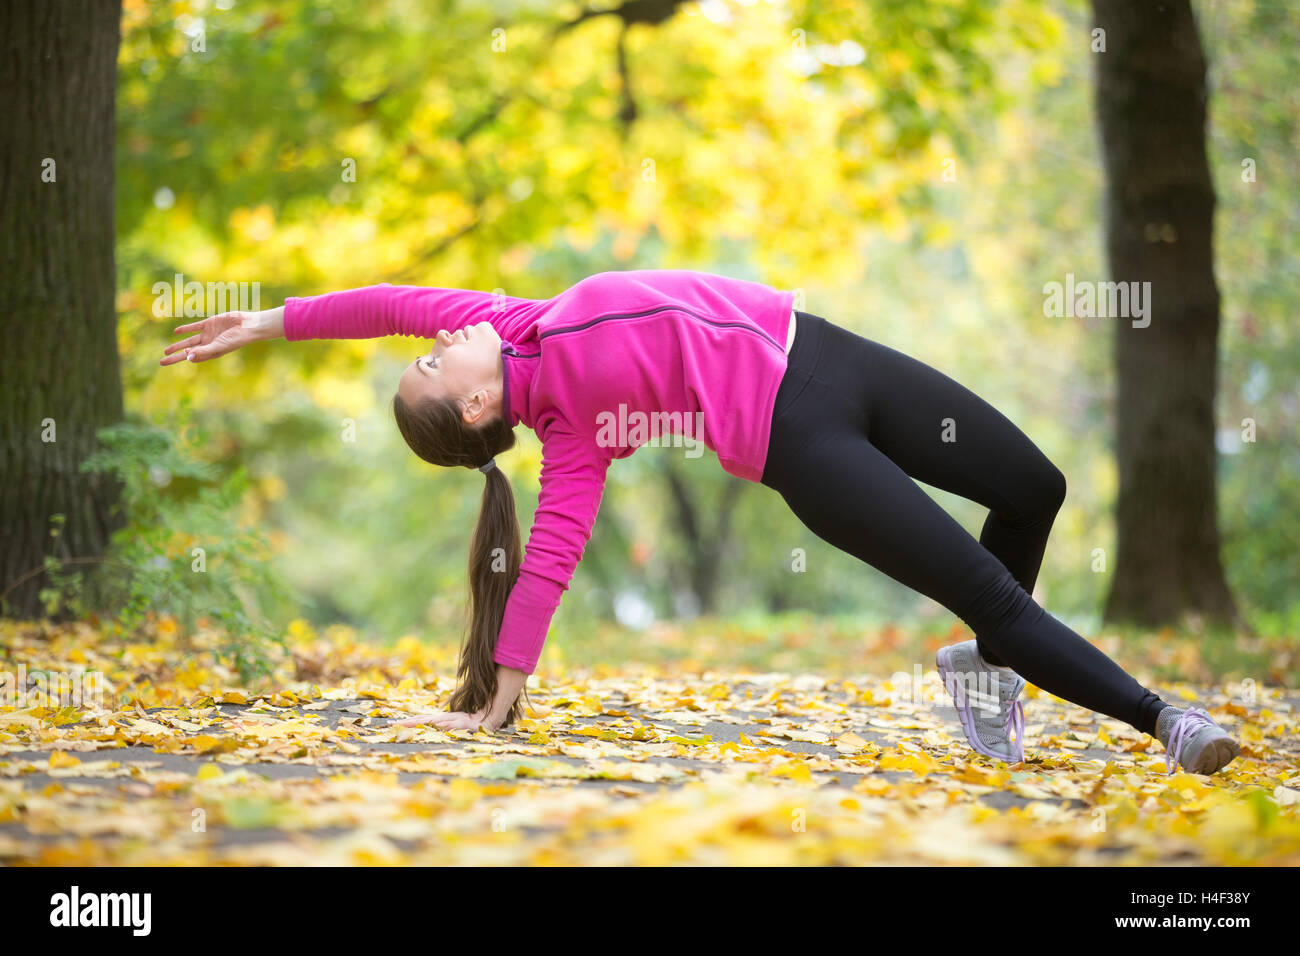 Autumn fitness: Wild Thing yoga pose - Stock Image